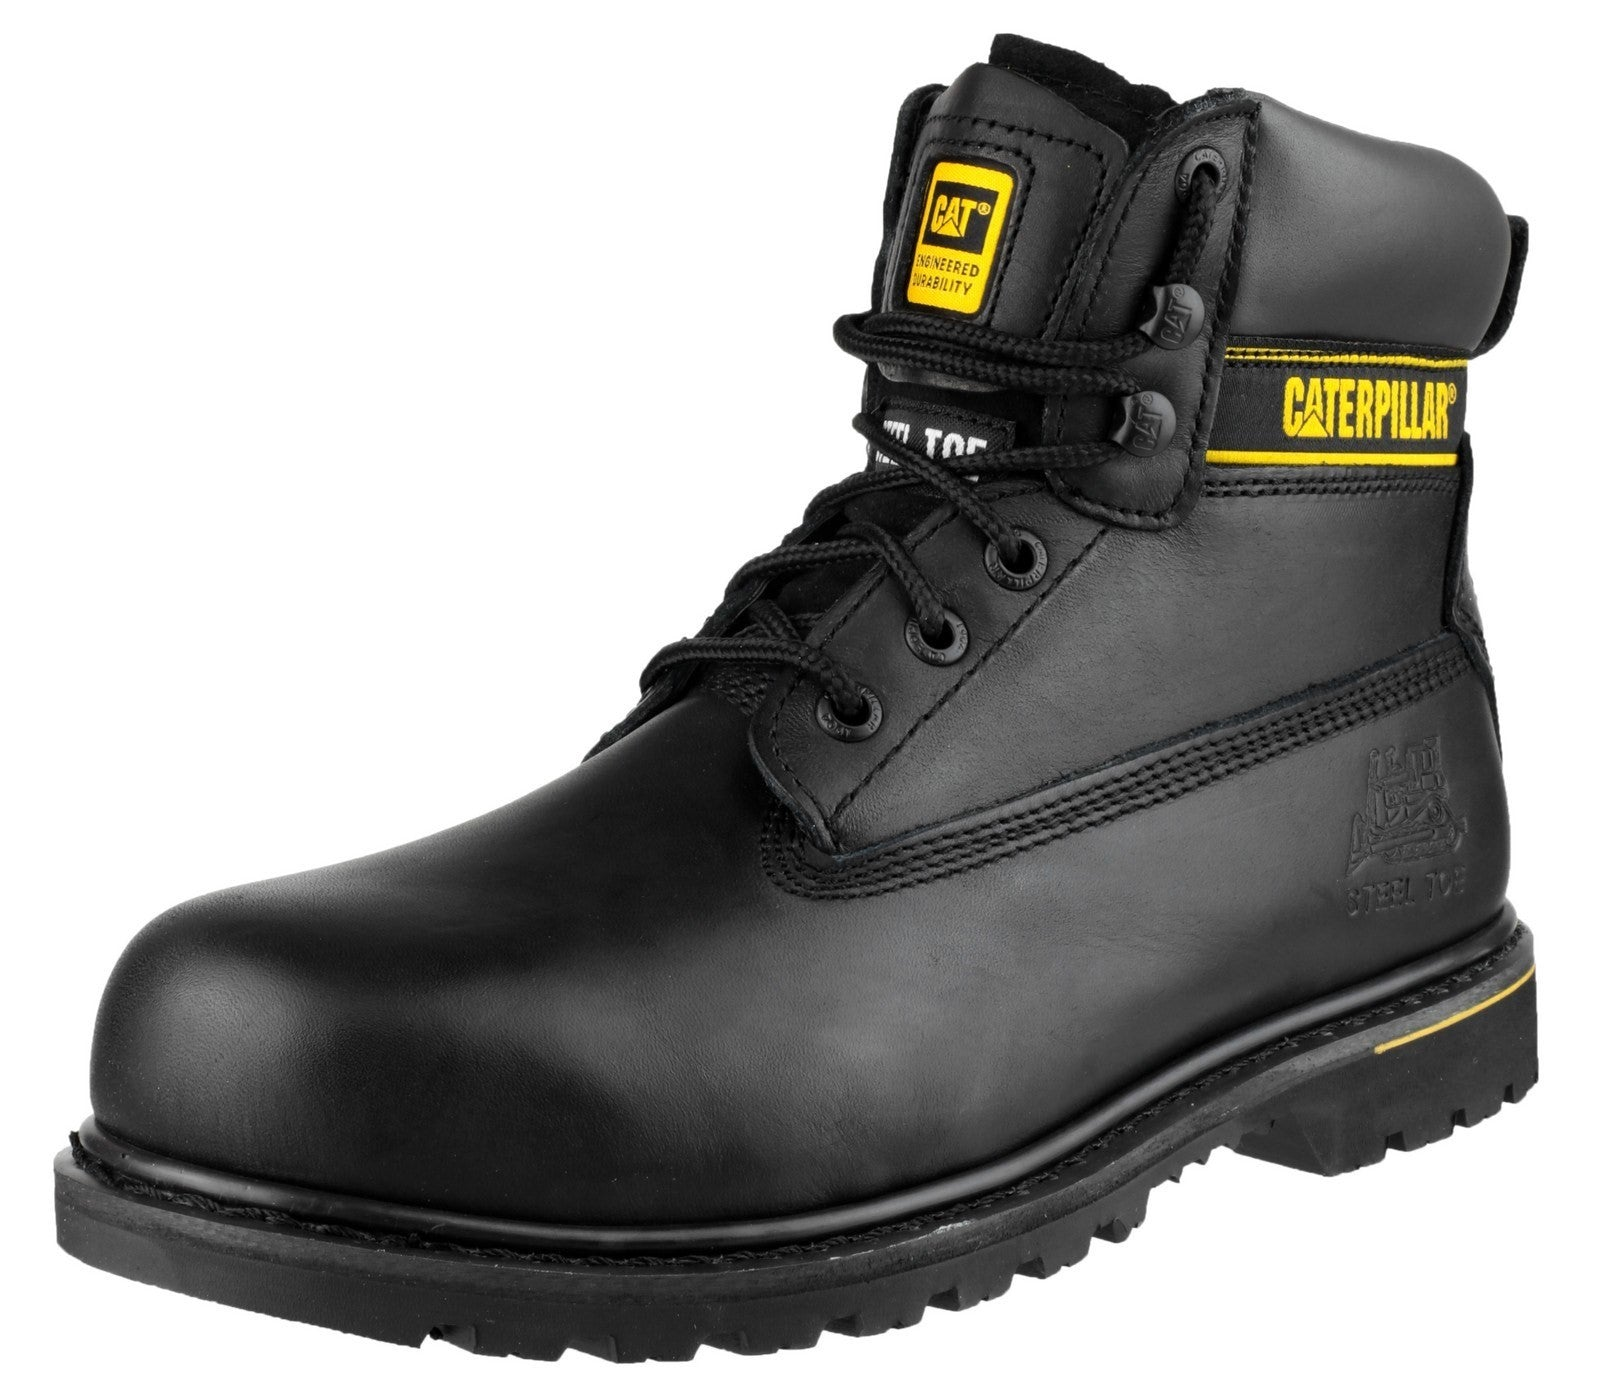 Caterpillar Men's Holton Safety Boot Black 12806